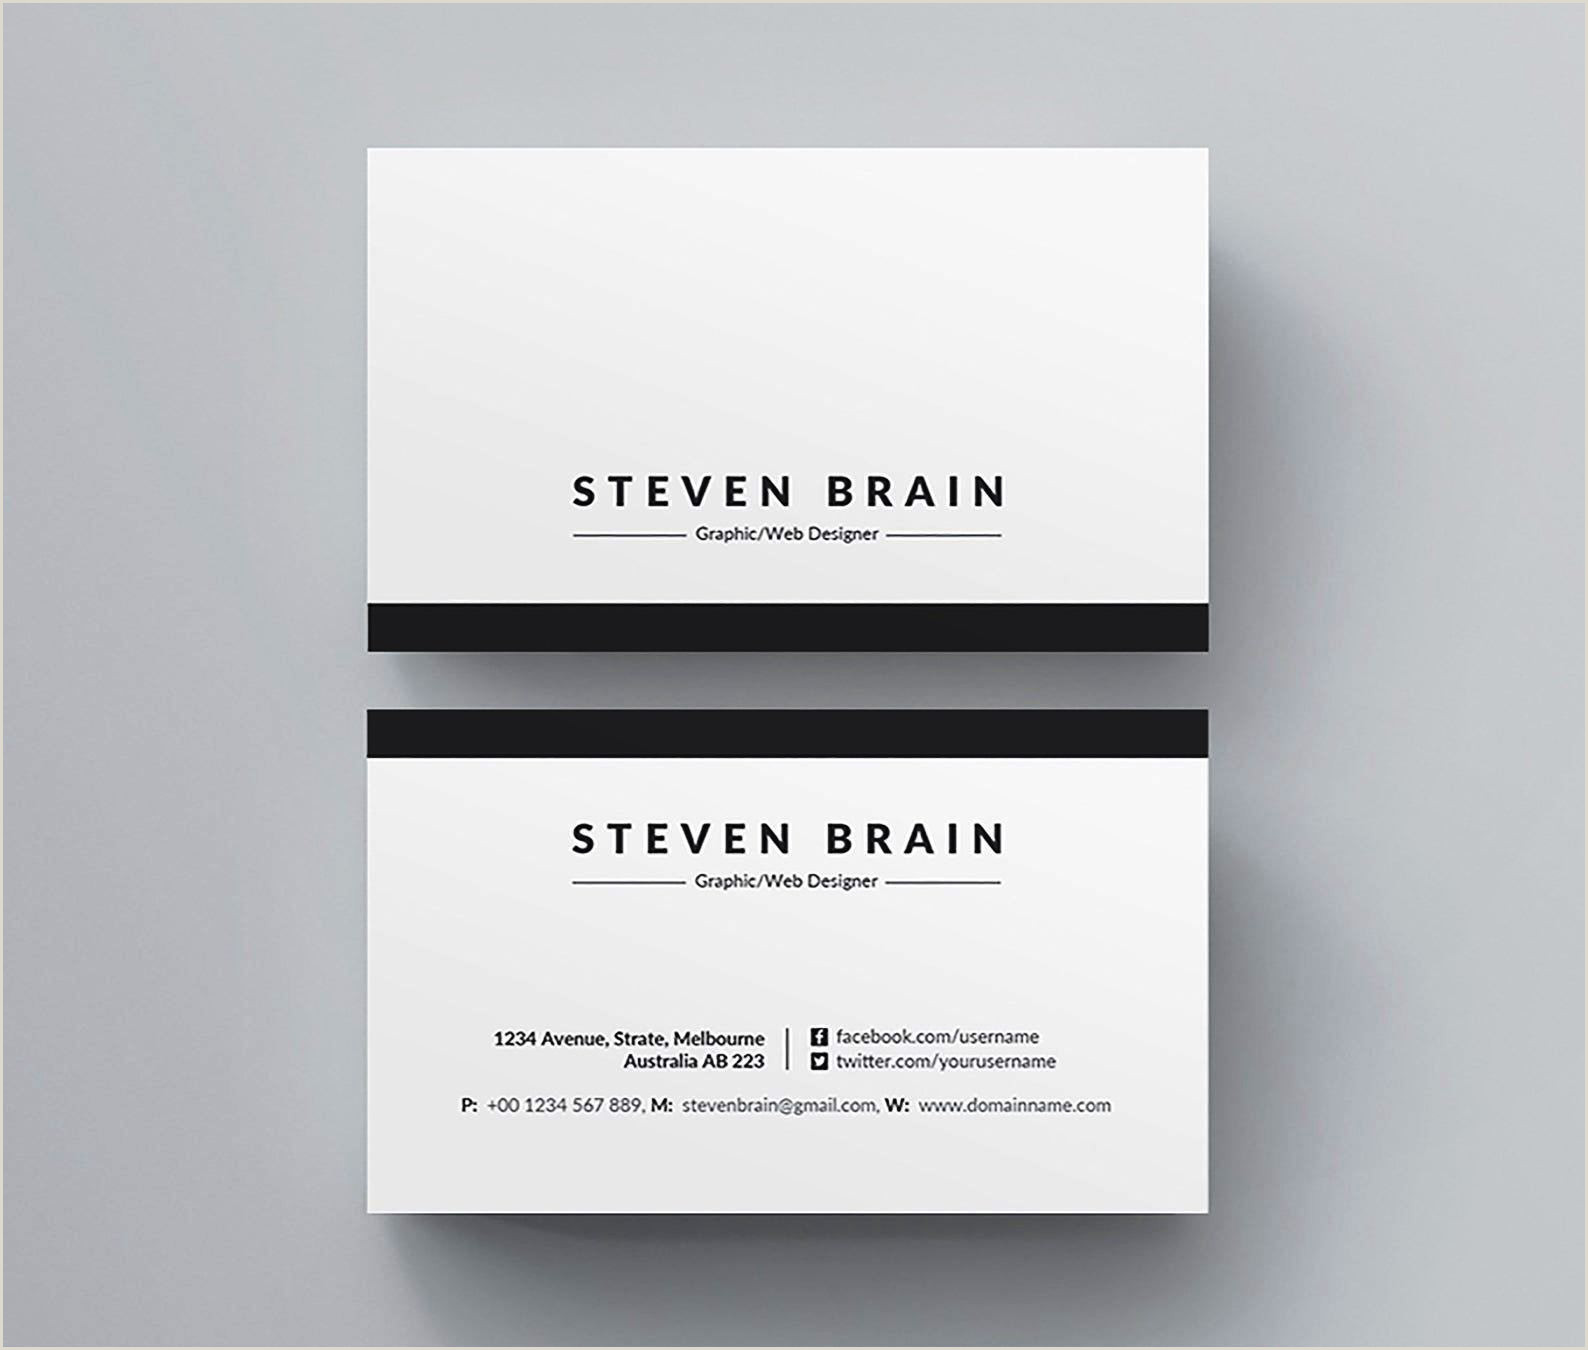 Complimentary Cards Designs Word Business Cards Templates